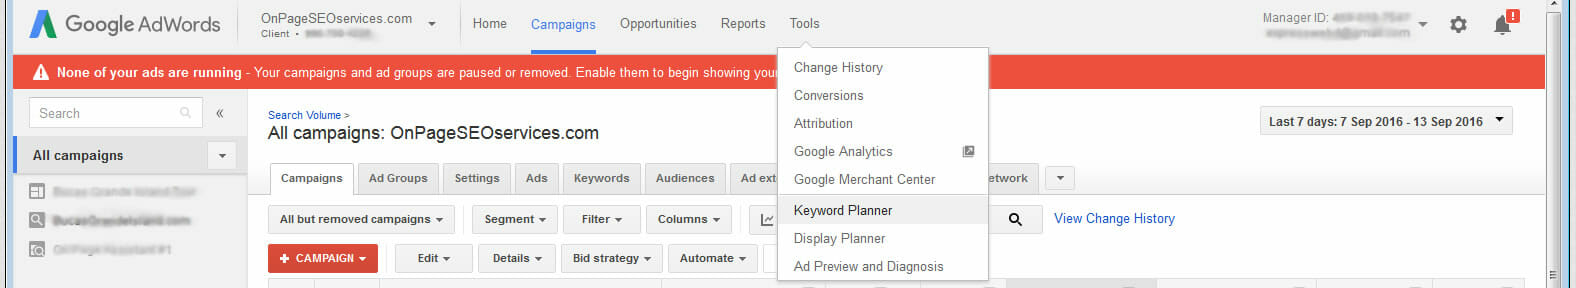 Click on Tools tab and choose Keyword Planner on the dropdown